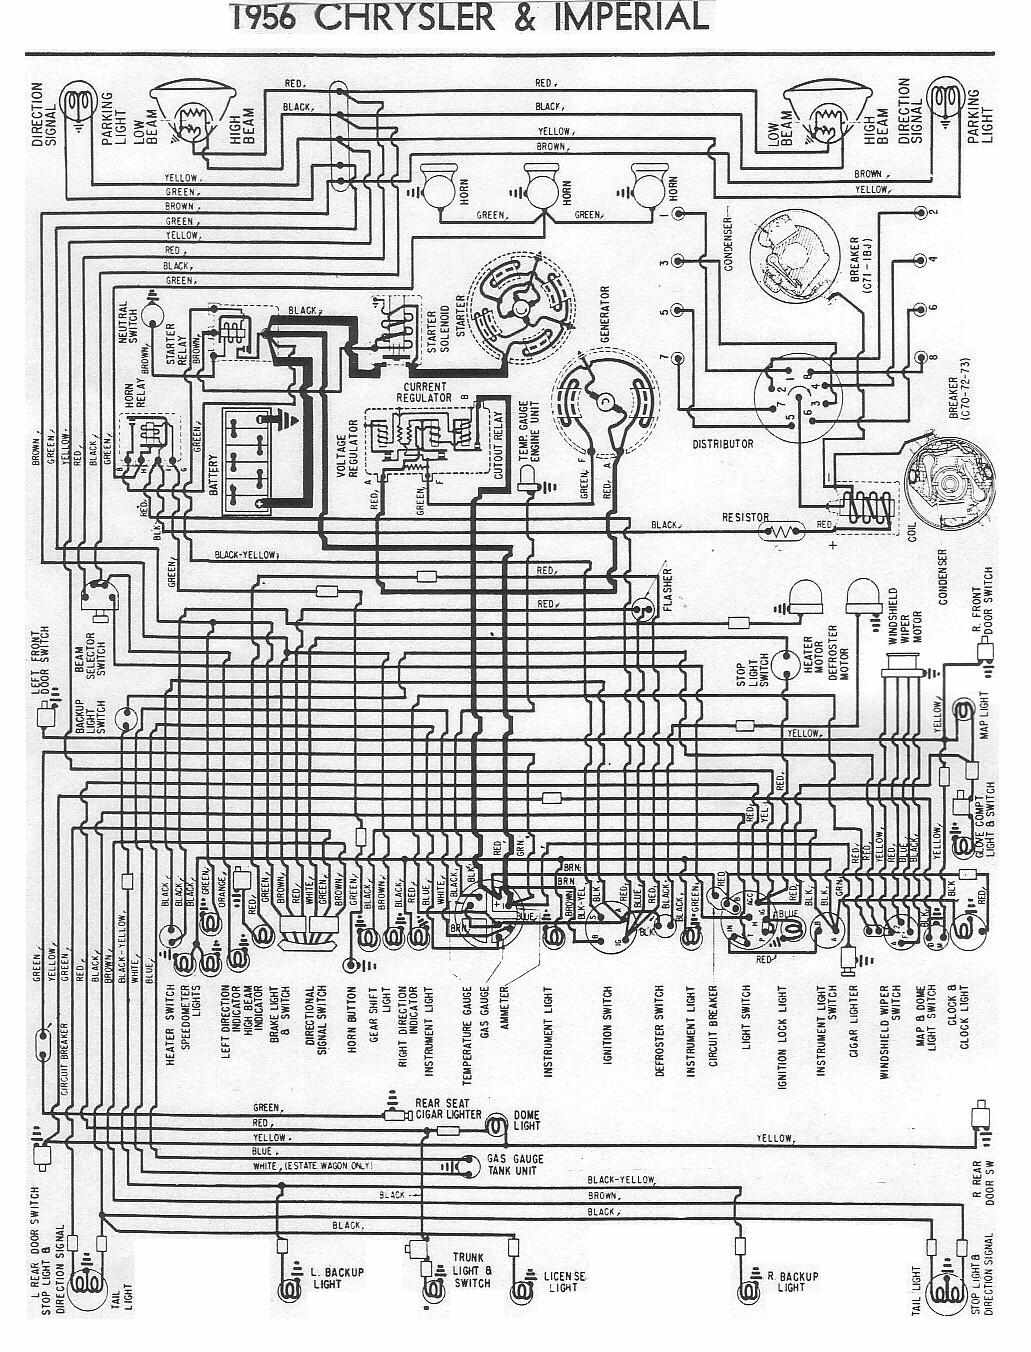 Amazing Chrysler Ignition Coil Wiring Diagram Gallery - The Best ...